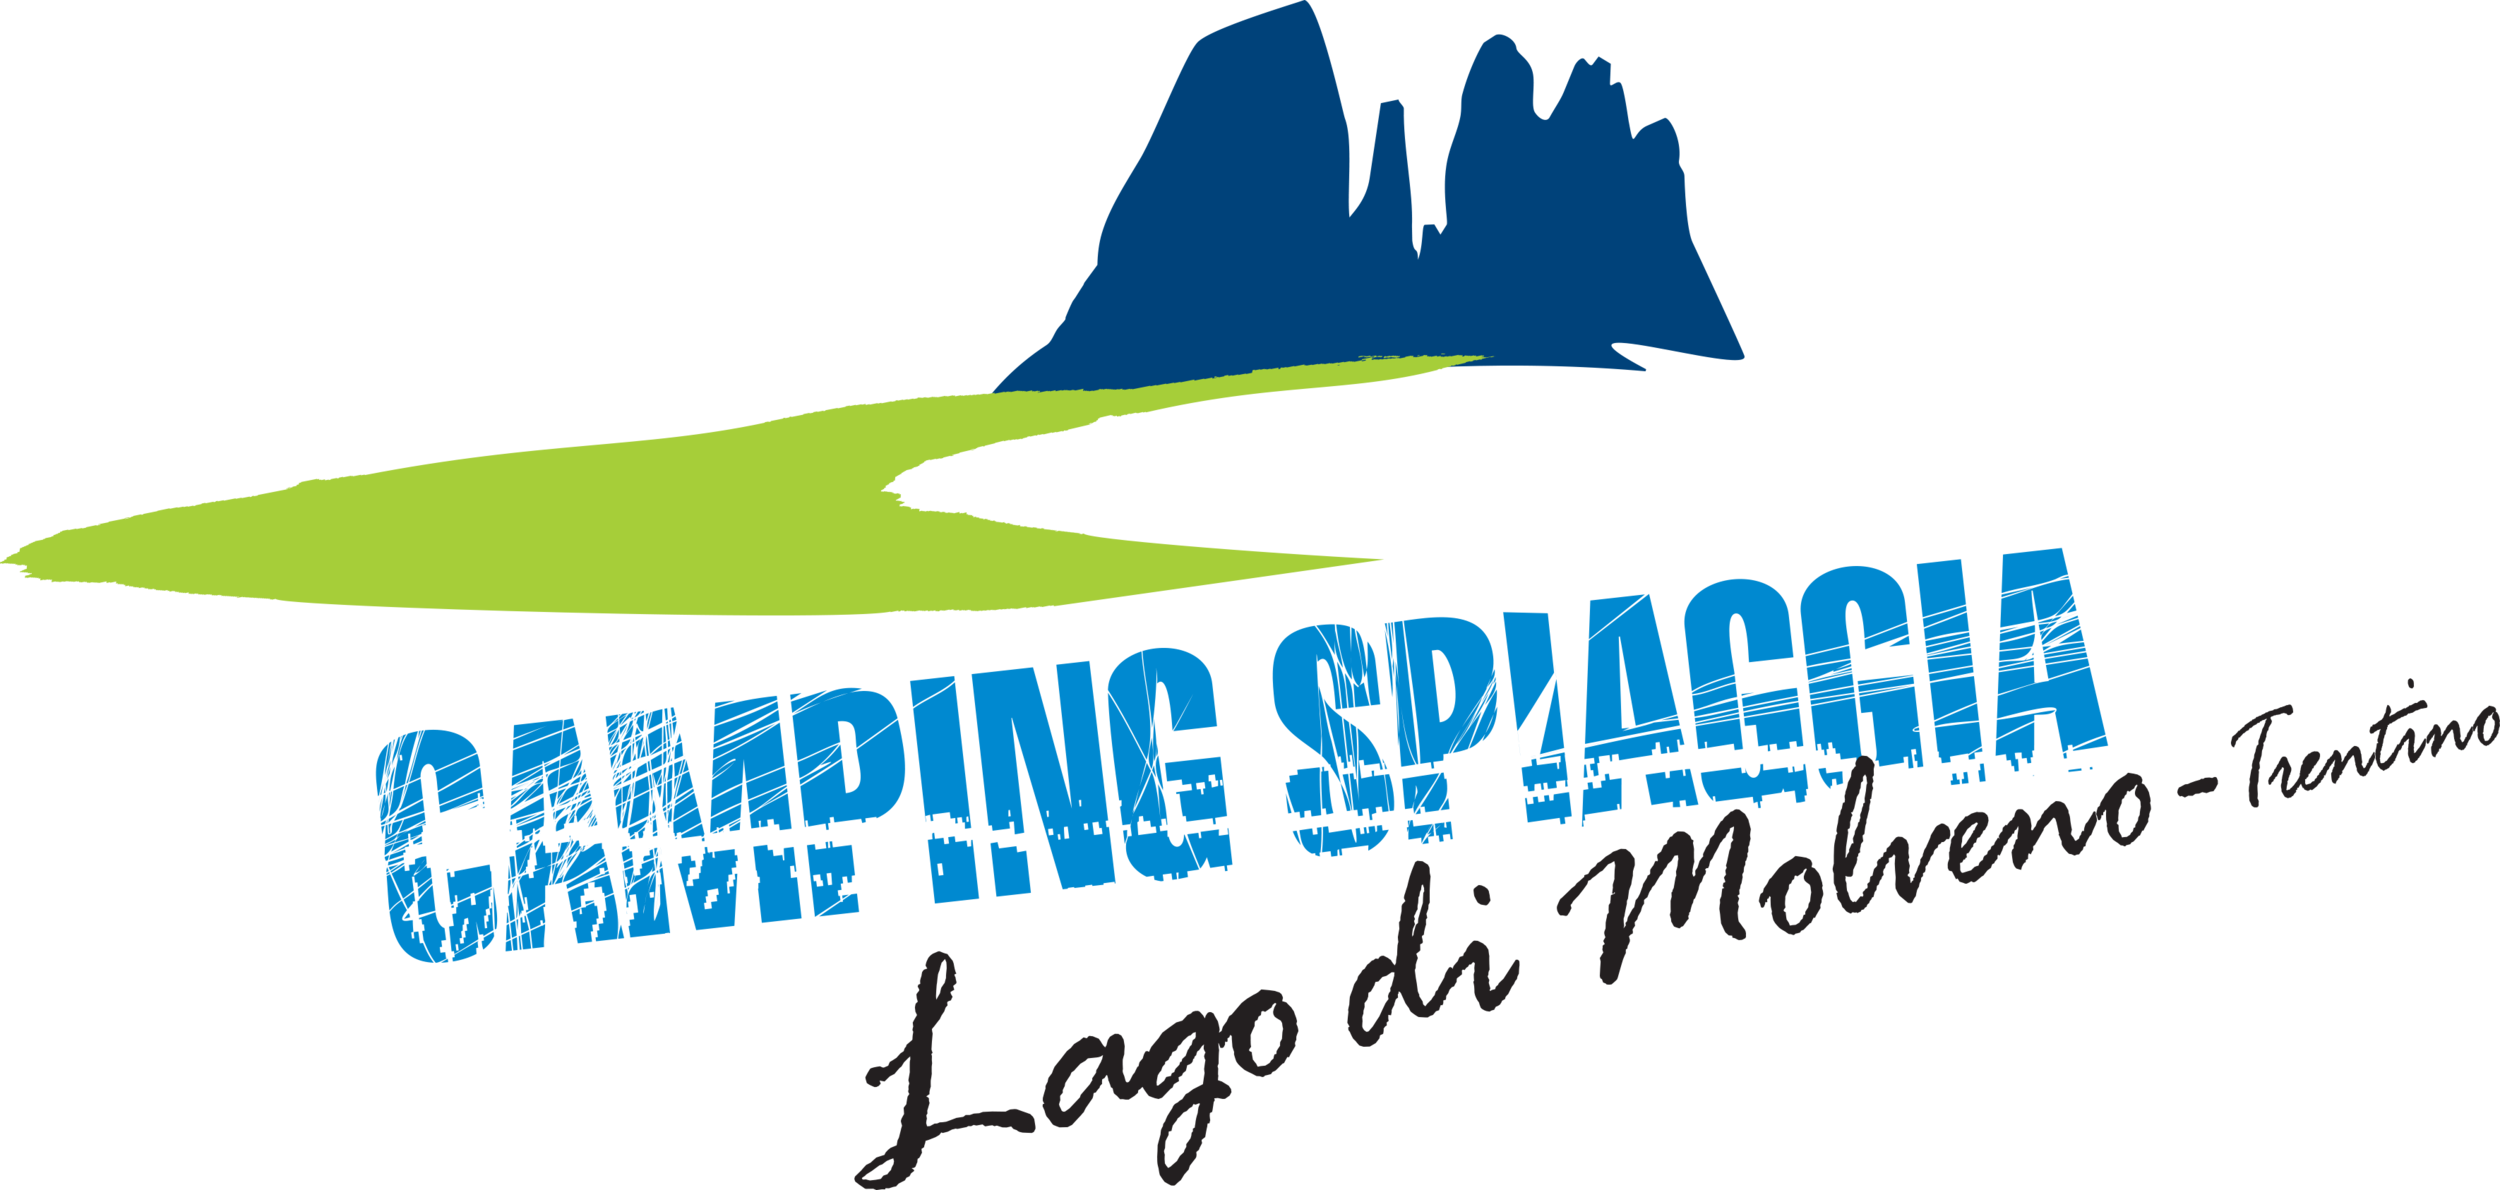 Logo Camping Spiaggia.png